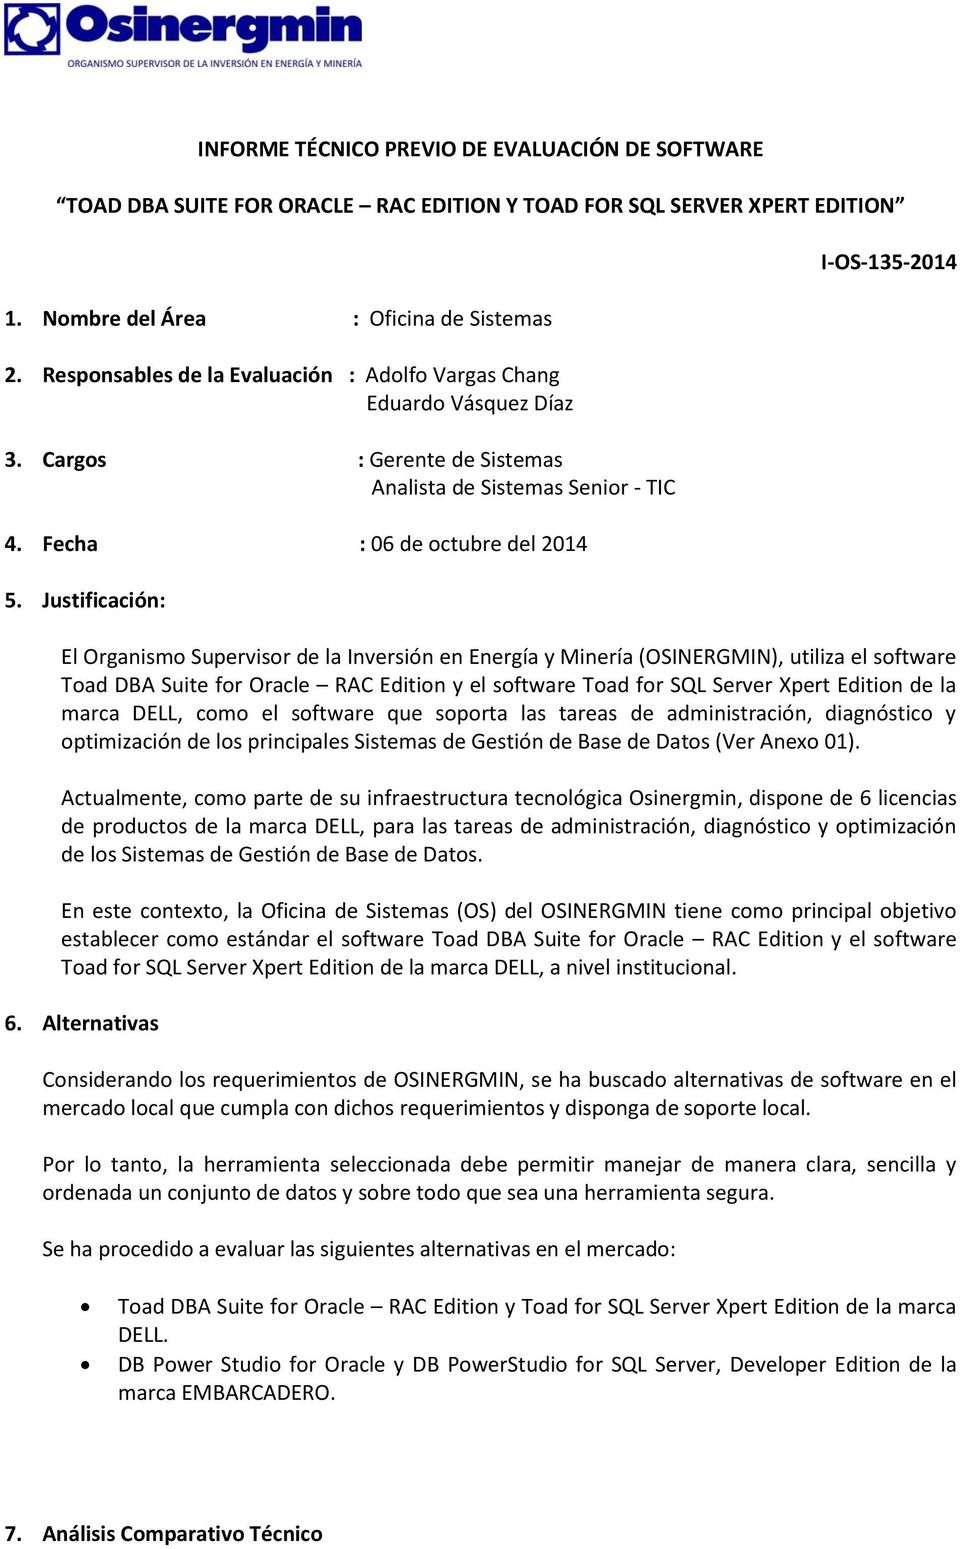 Justificación: I-OS-13-01 El Organismo Supervisor de la Inversión en Energía y Minería (OSINERGMIN), utiliza el software Toad DBA Suite for Oracle RAC Edition y el software Toad for SQL Server Xpert